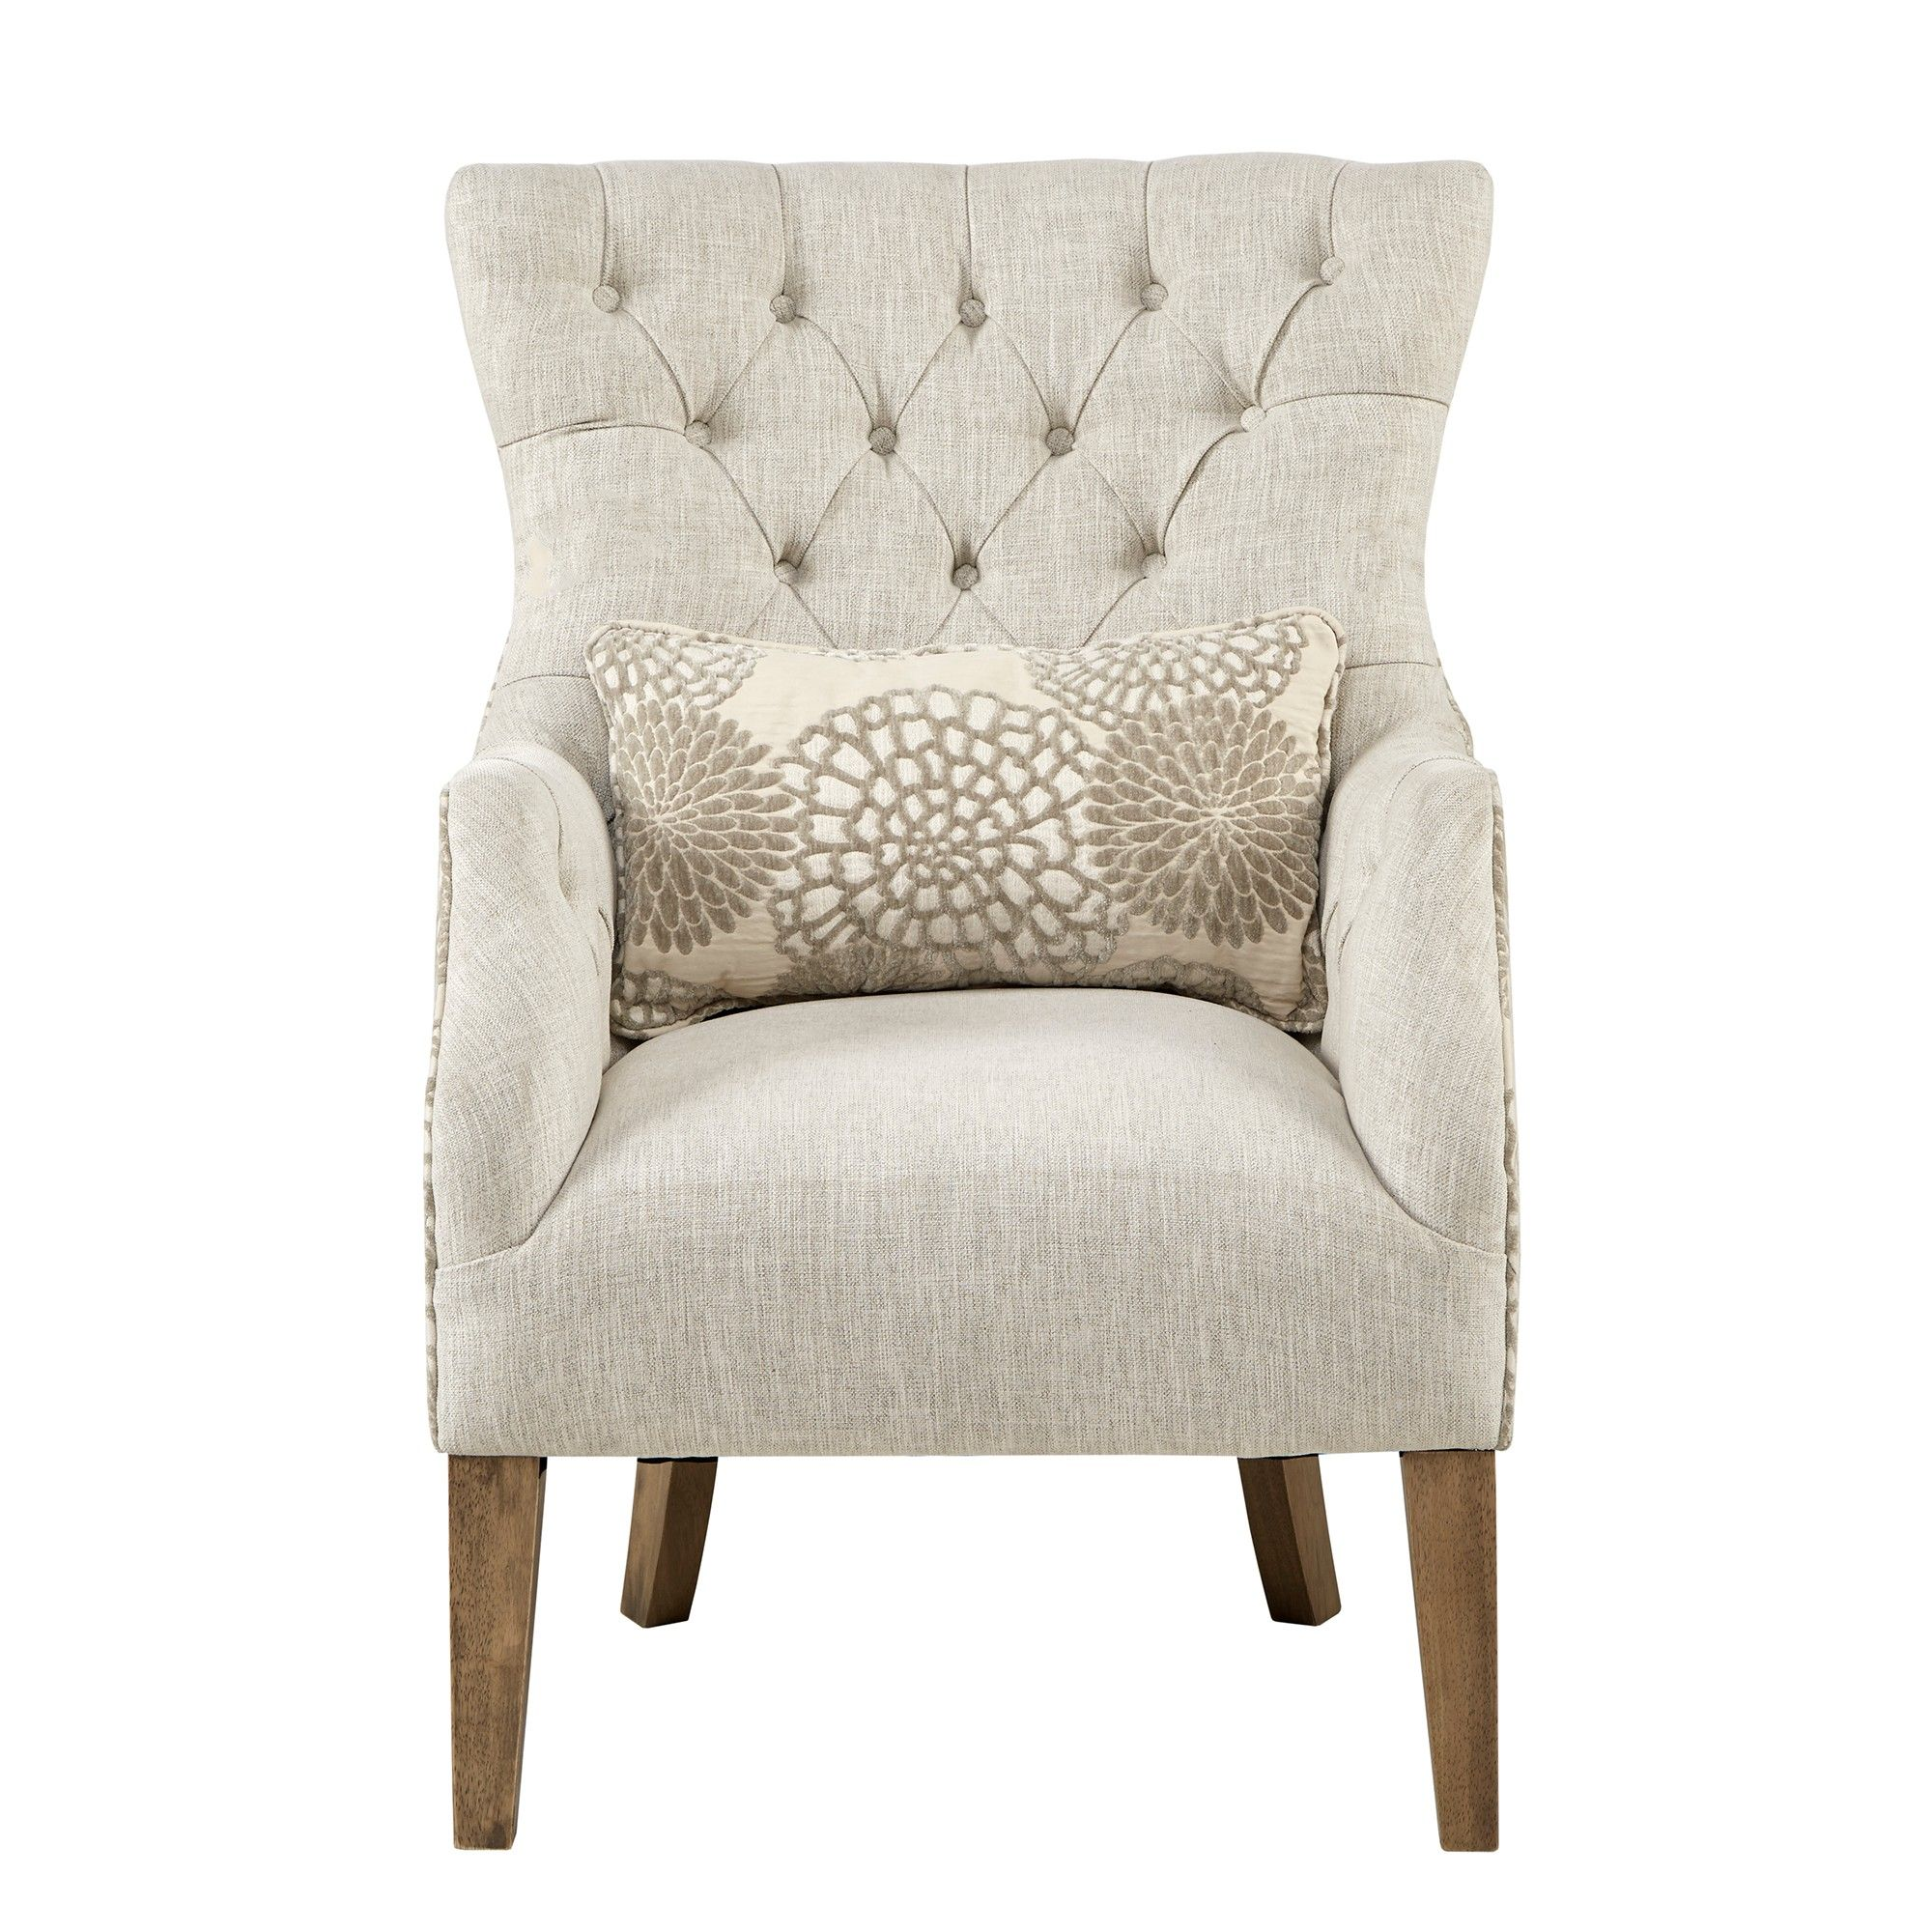 Chapman Accent Chair with Back Pillow Beige Accent